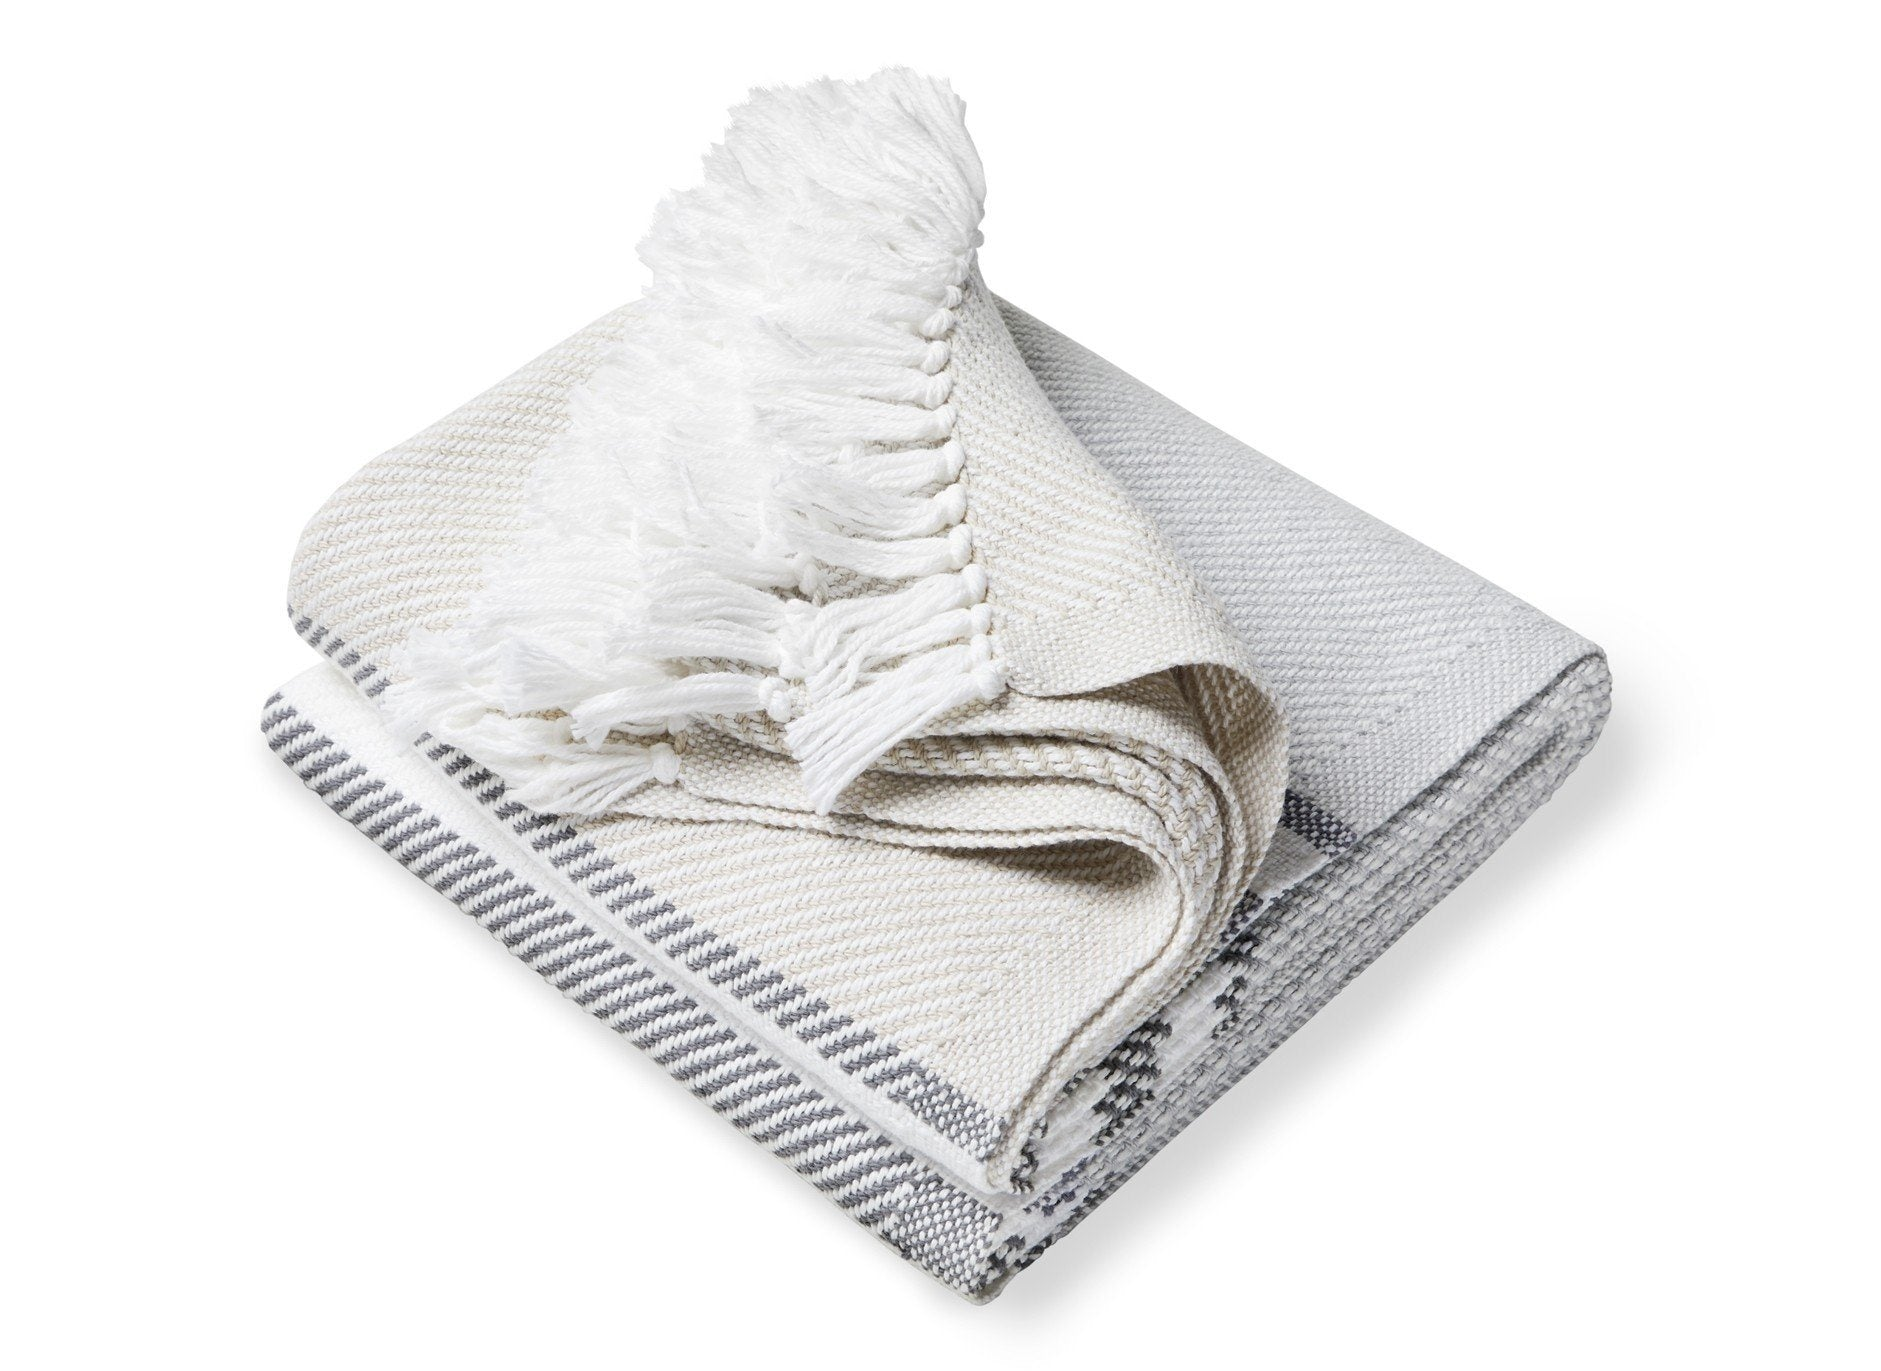 Allagash Dove Gray, Slate & Oyster Throw by Brahms Mount